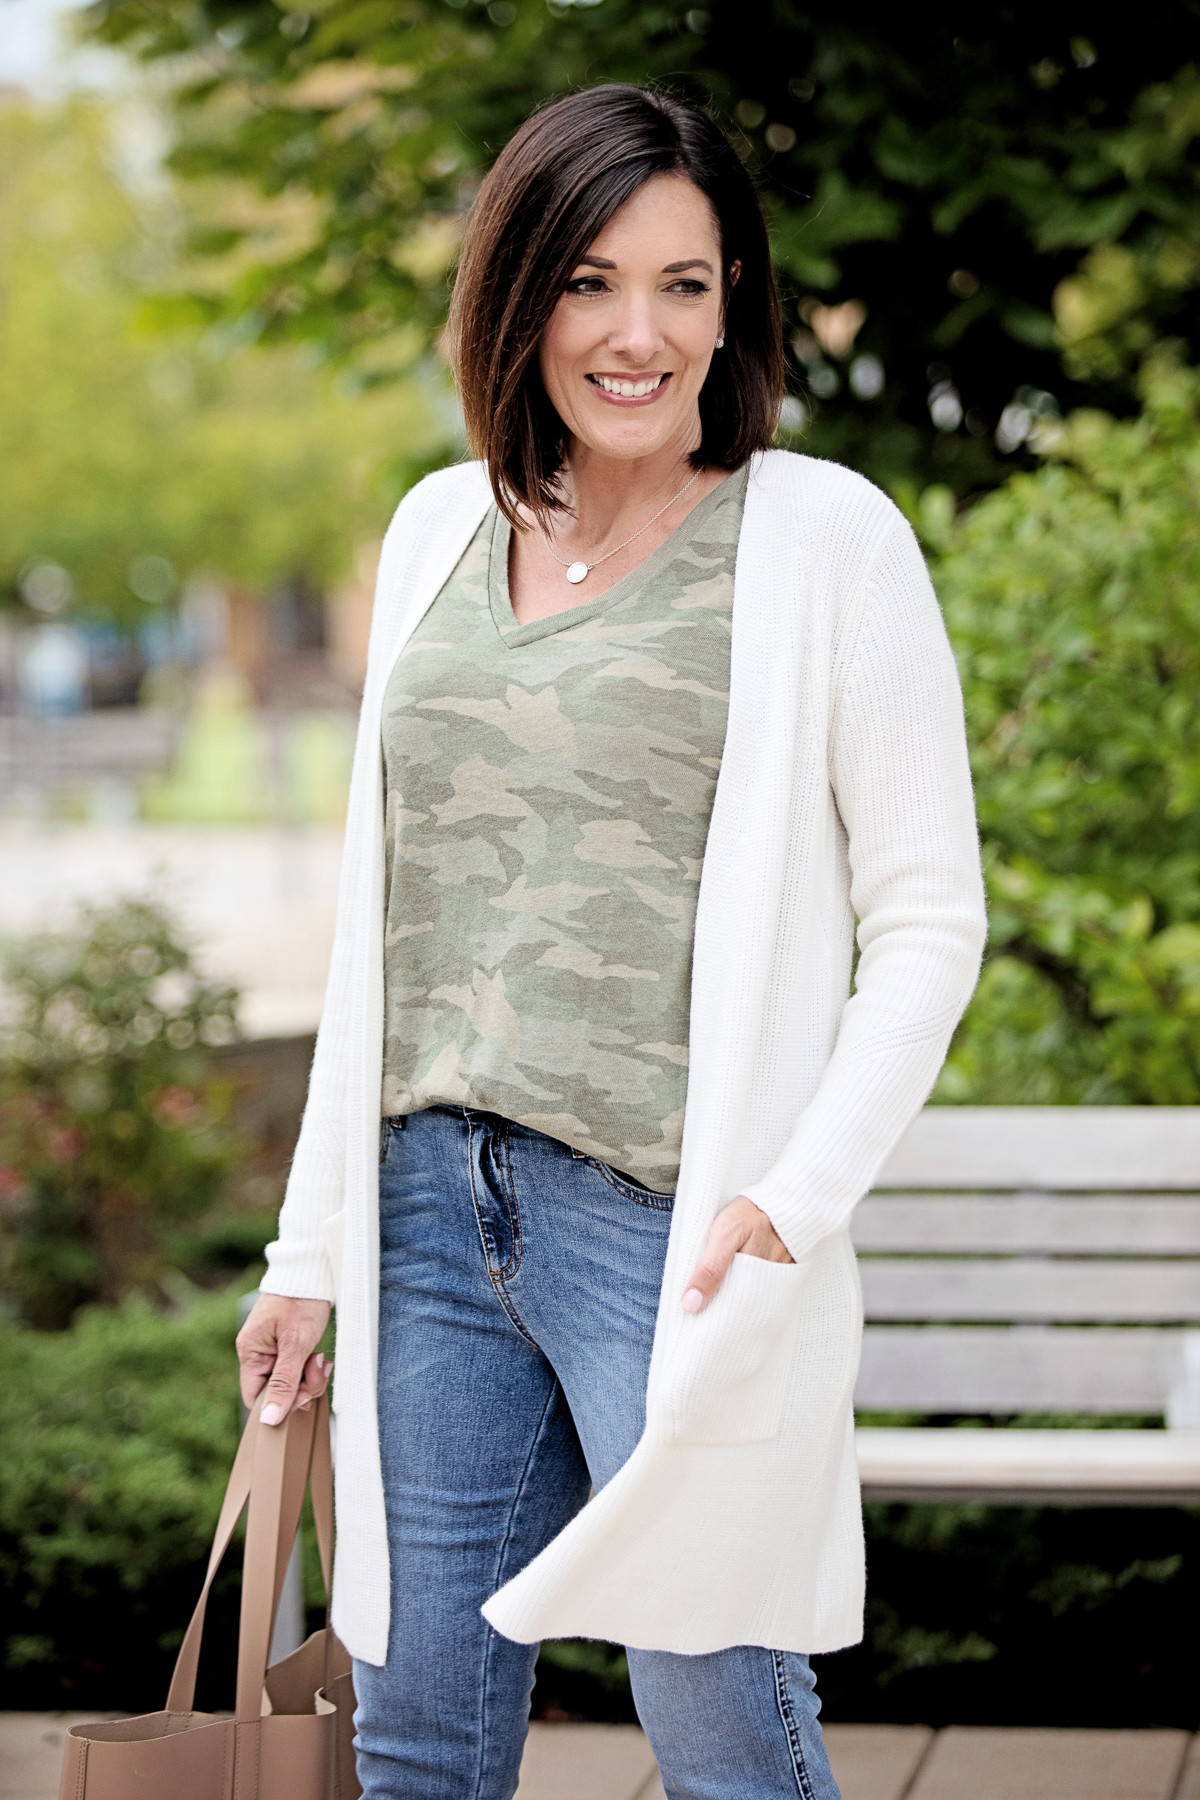 How to Wear Cardigans Without Looking Frumpy #FightTheFrump